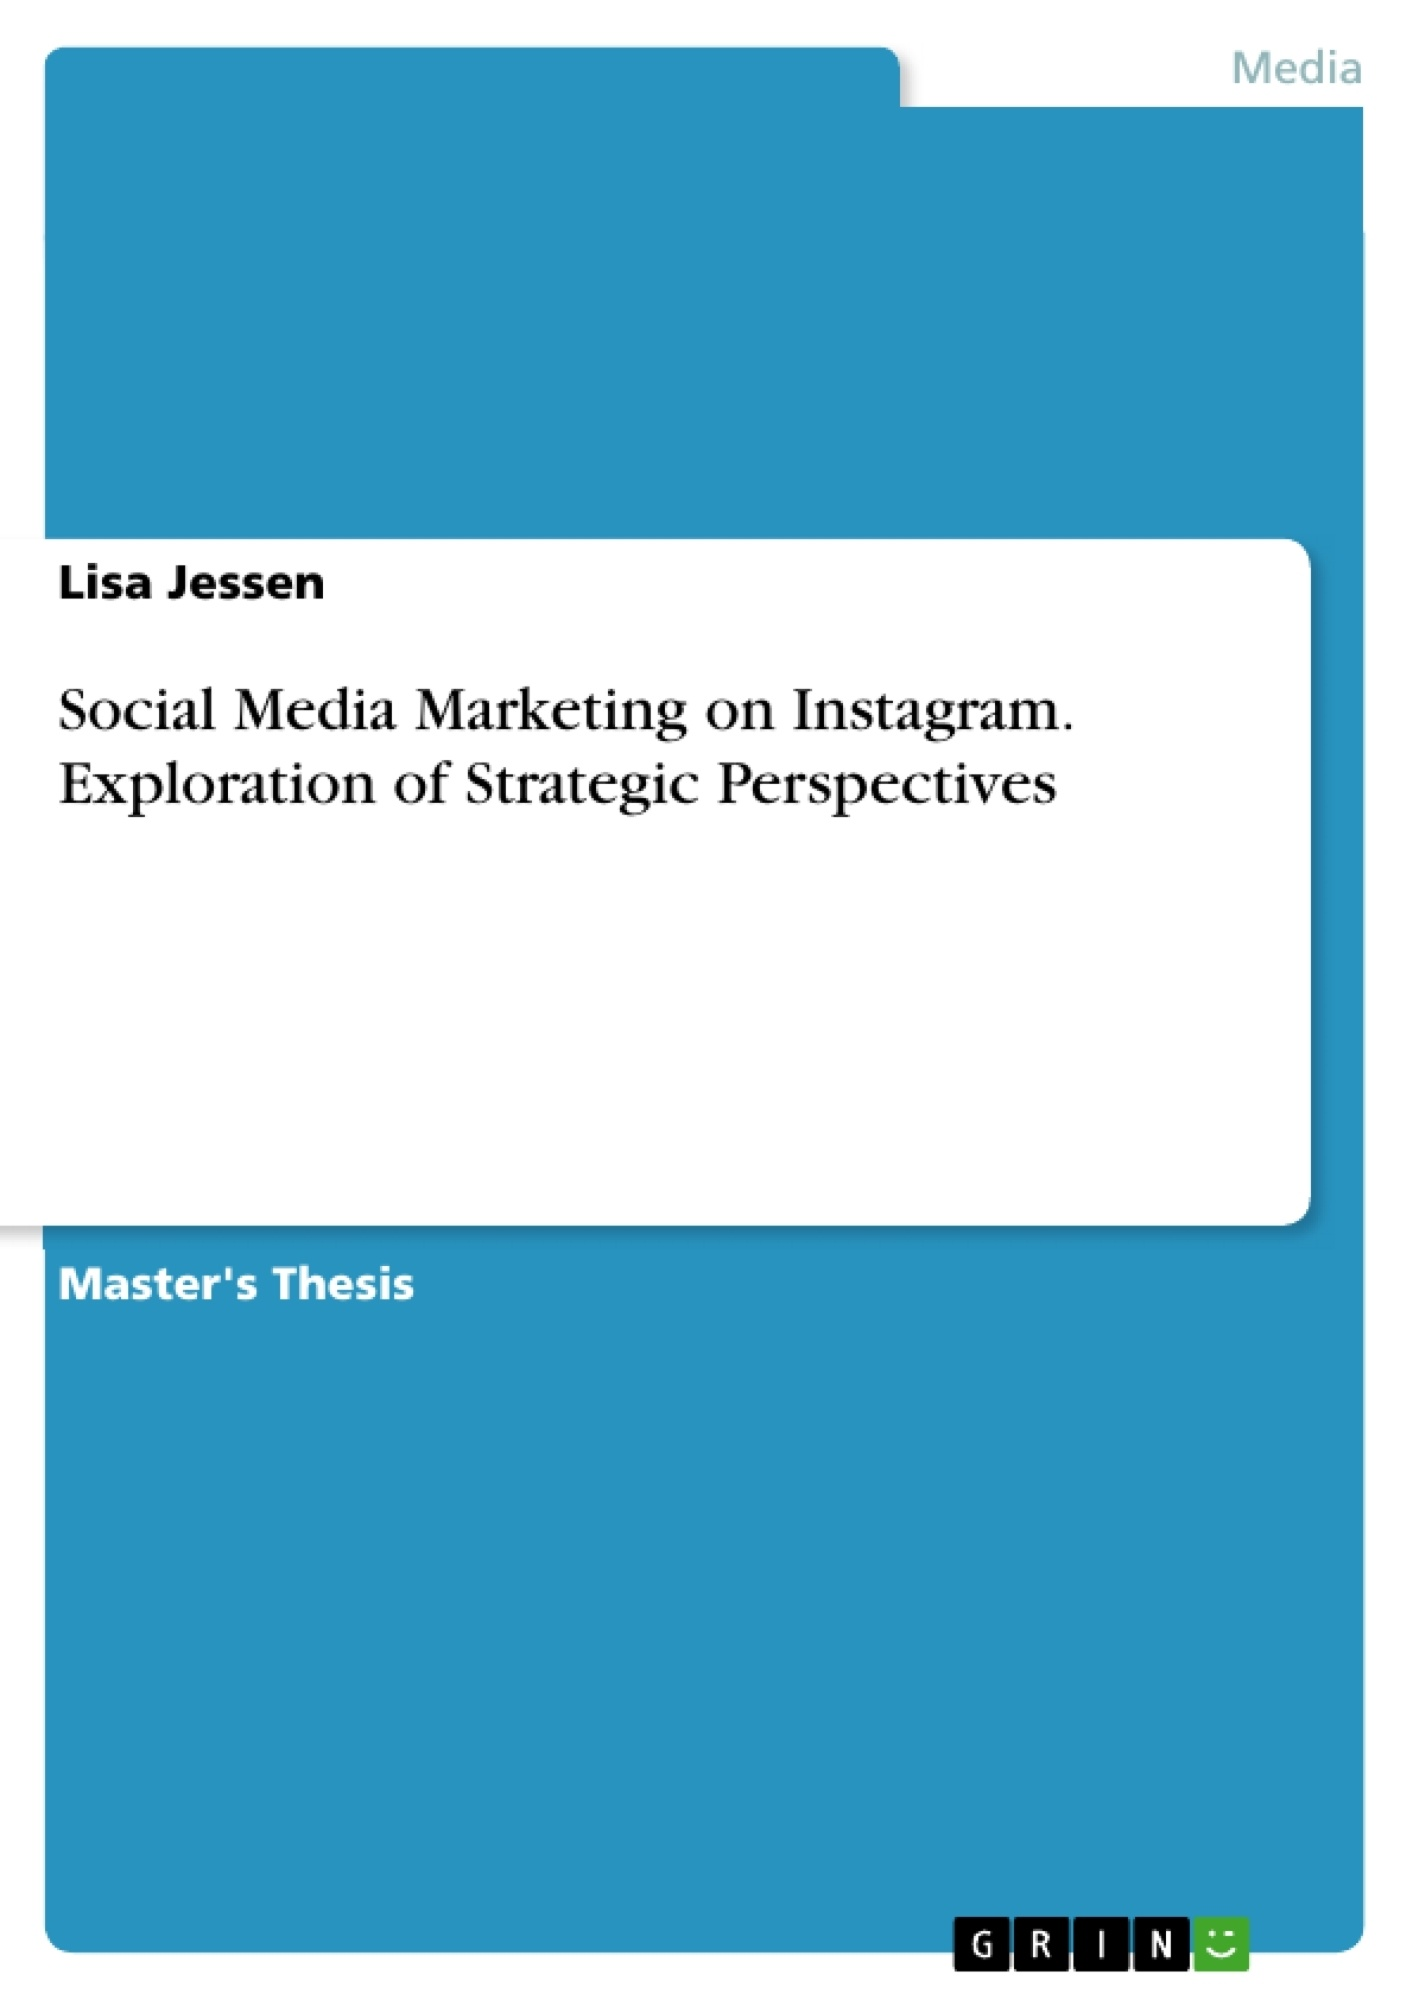 Title: Social Media Marketing on Instagram. Exploration of Strategic Perspectives